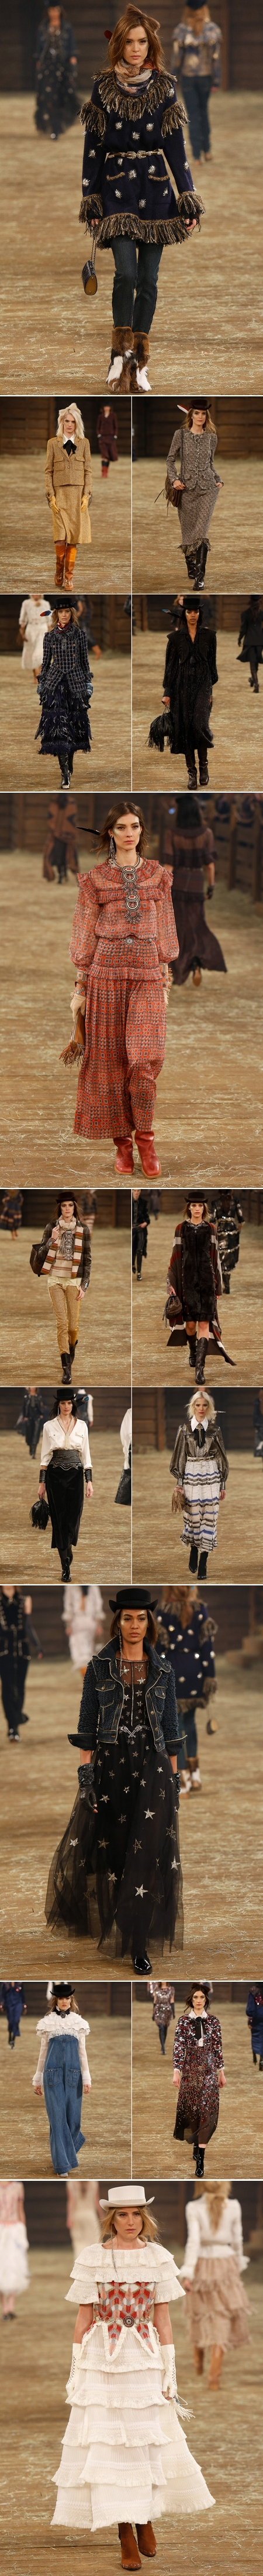 Chanel, prefall 2014, runway, fashion, fashfaith blog